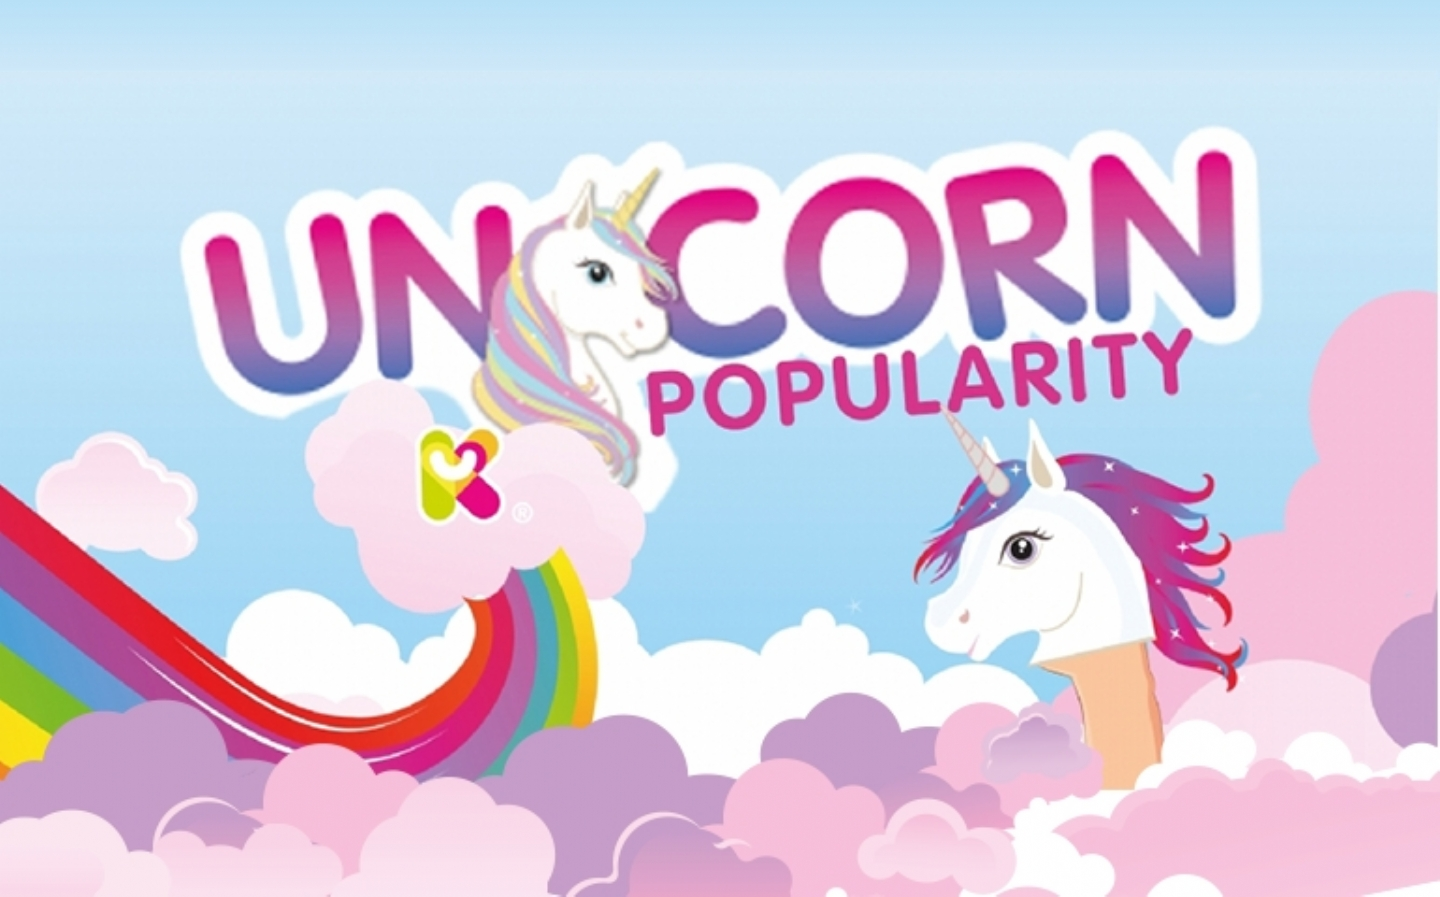 Why are unicorns so popular? And what does this mean for retai...